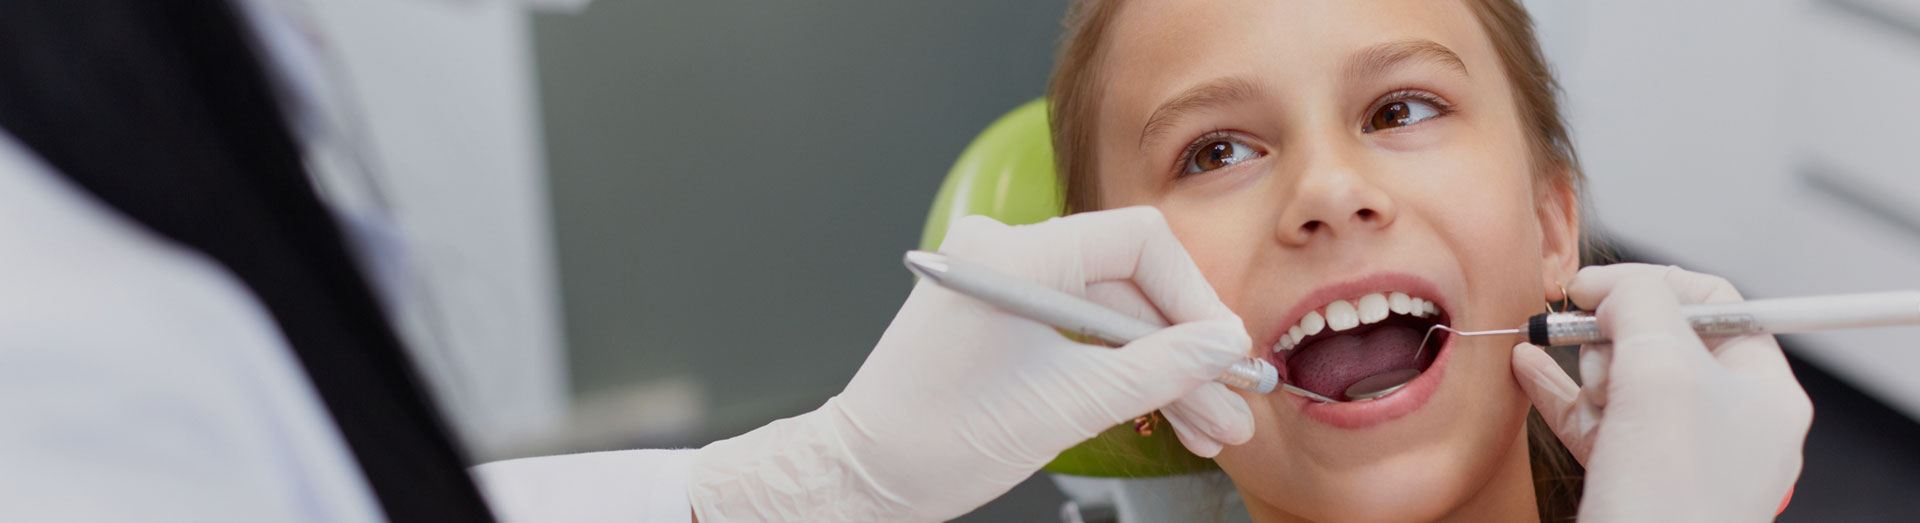 Dentist checking teeth of a child